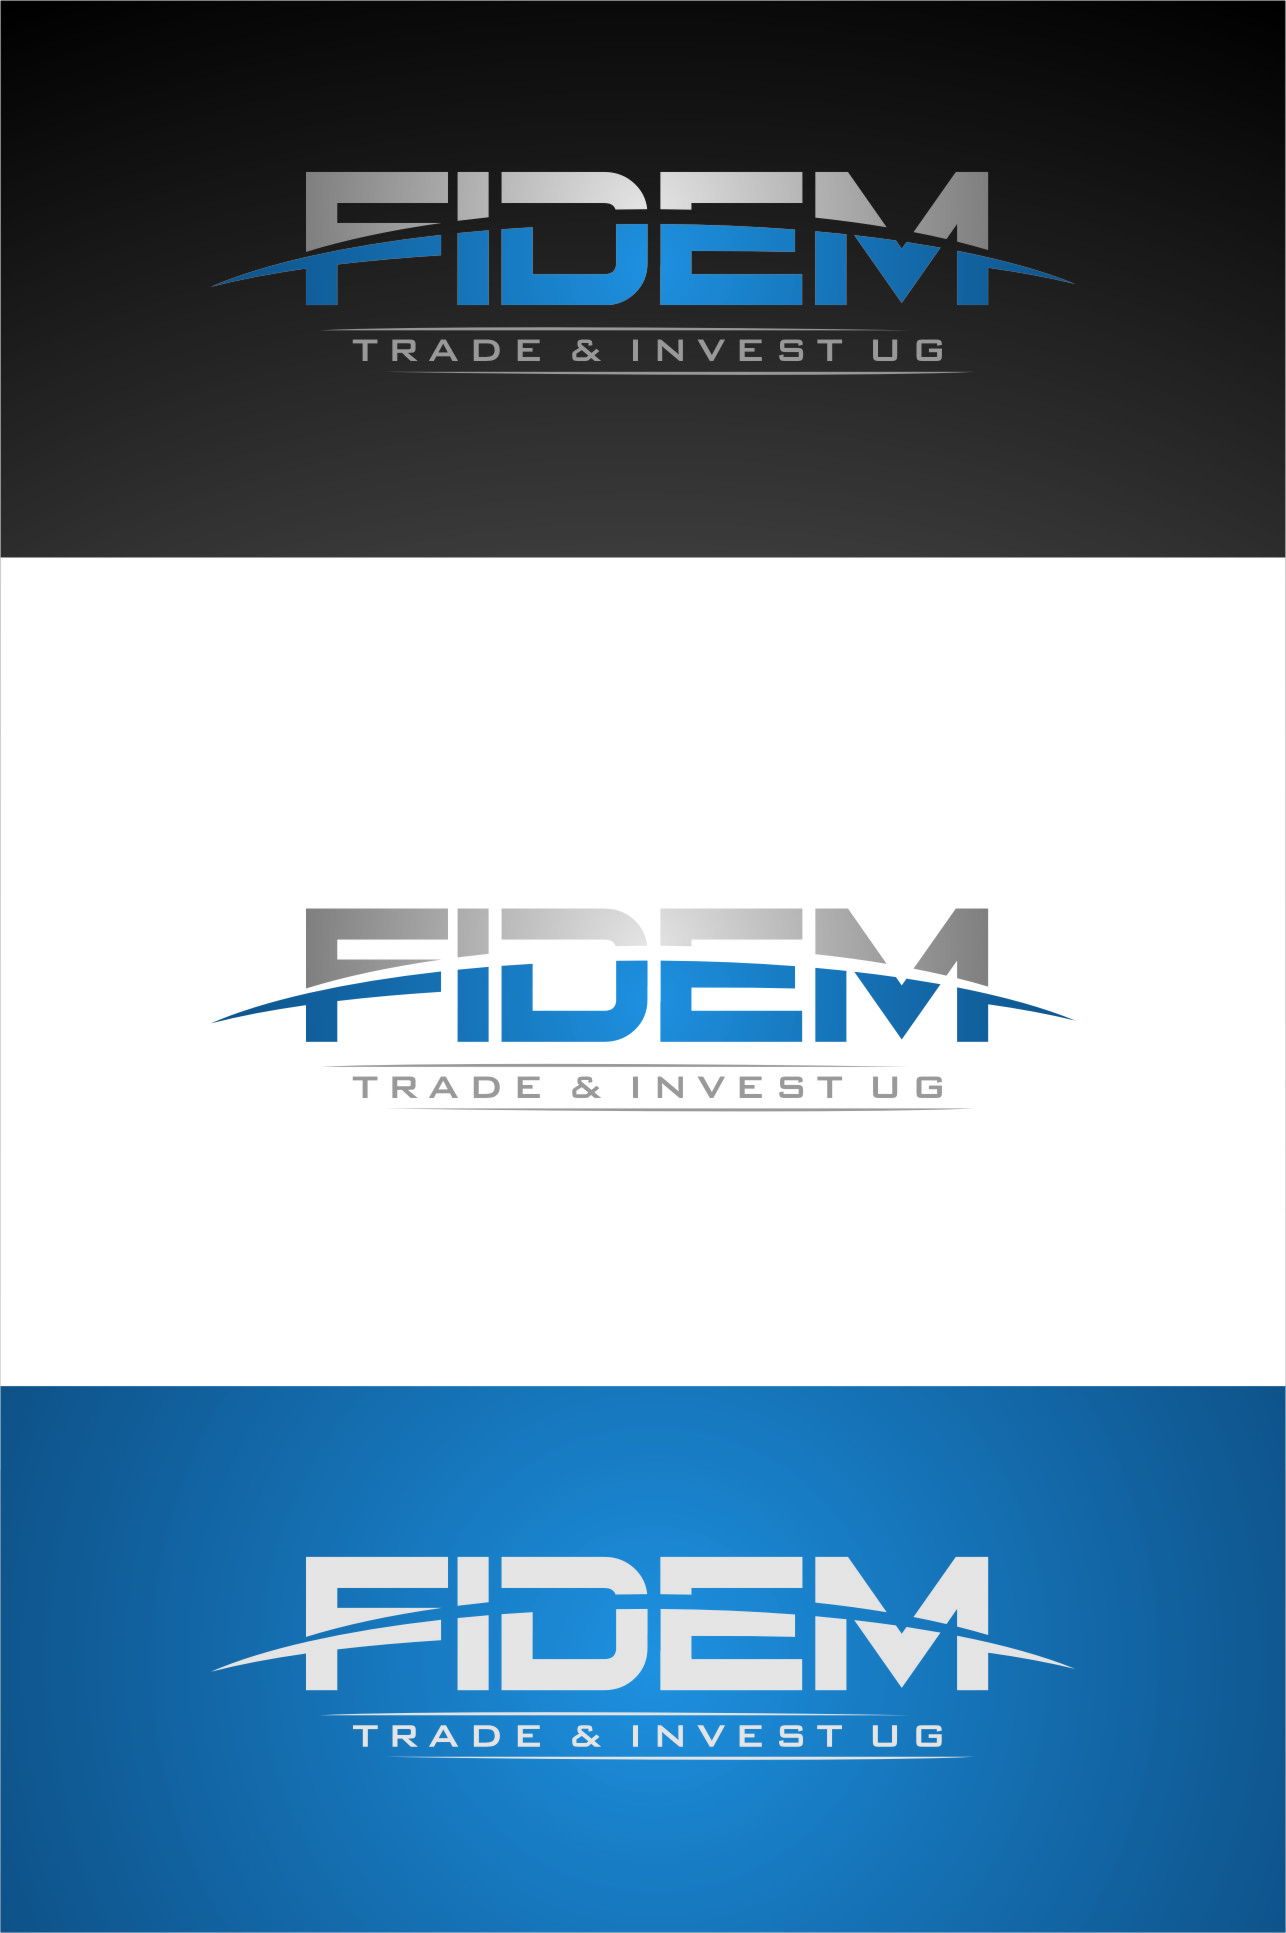 Logo Design by Ngepet_art - Entry No. 361 in the Logo Design Contest Professional Logo Design for FIDEM Trade & Invest UG.